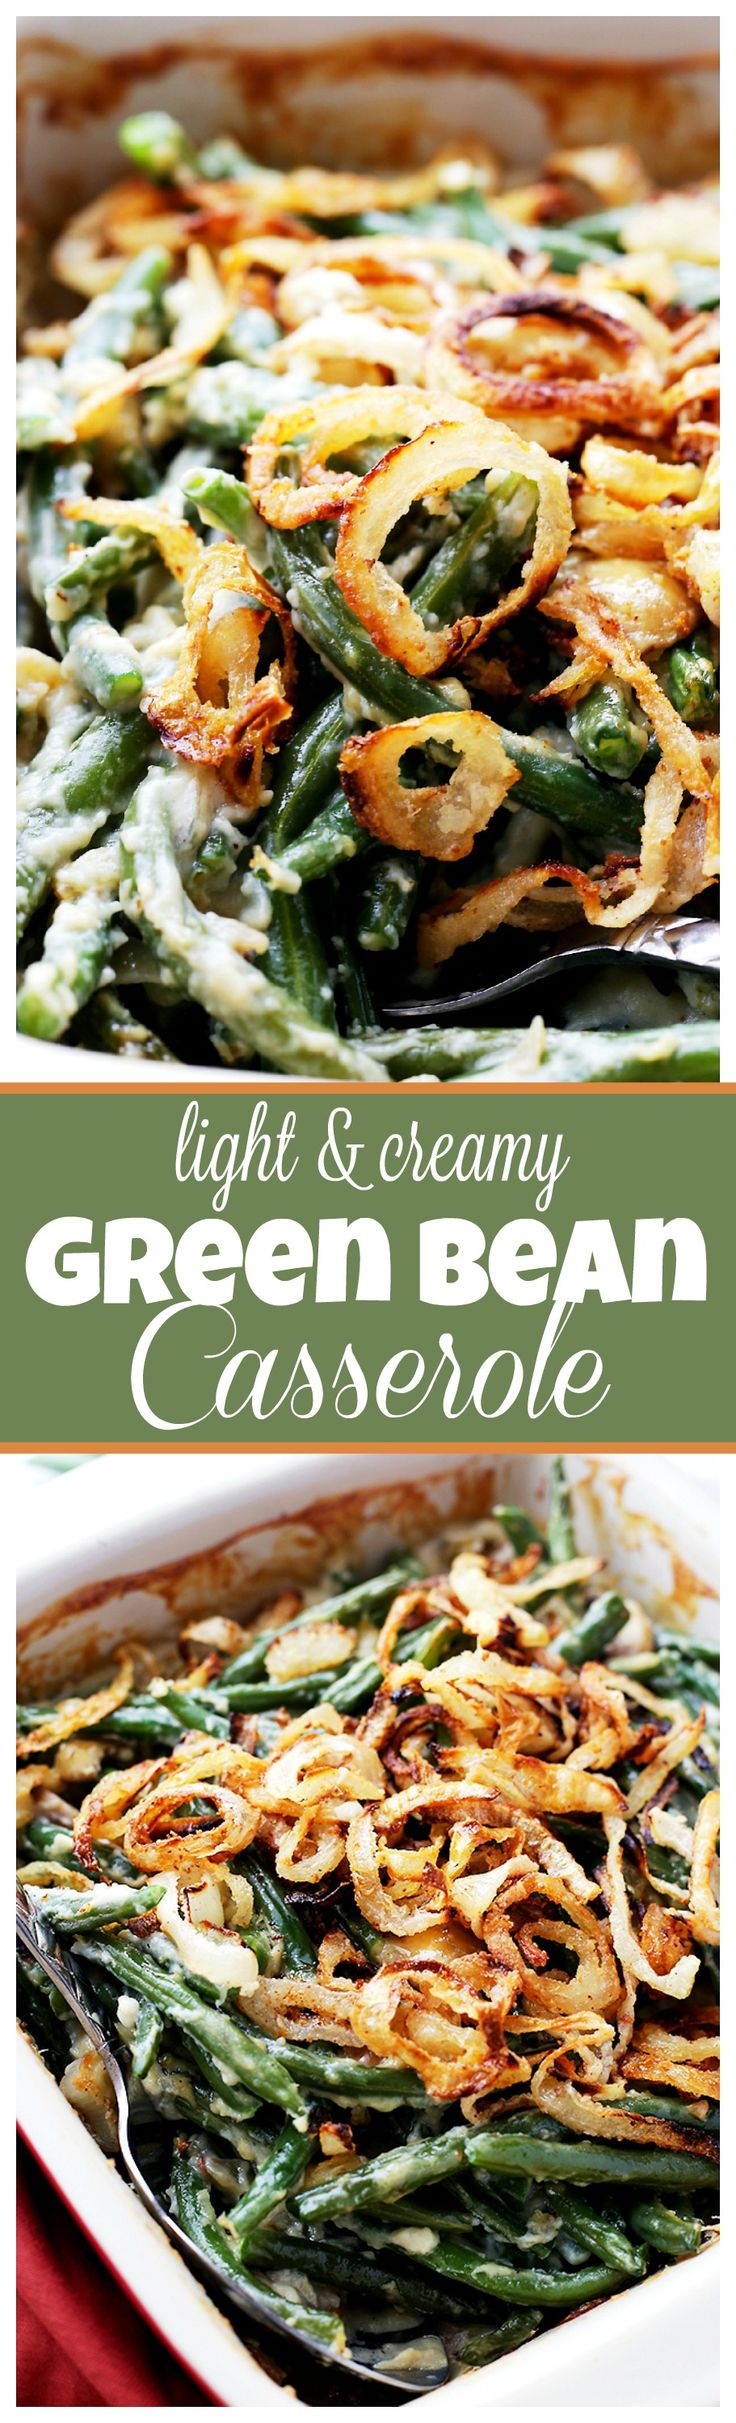 Lightened-Up Creamy Green Bean Casserole - A delicious and creamy lightened-up version of everyone's favorite Thanksgiving green beans side dish made with fresh ingredients, and without the canned processed creams.: